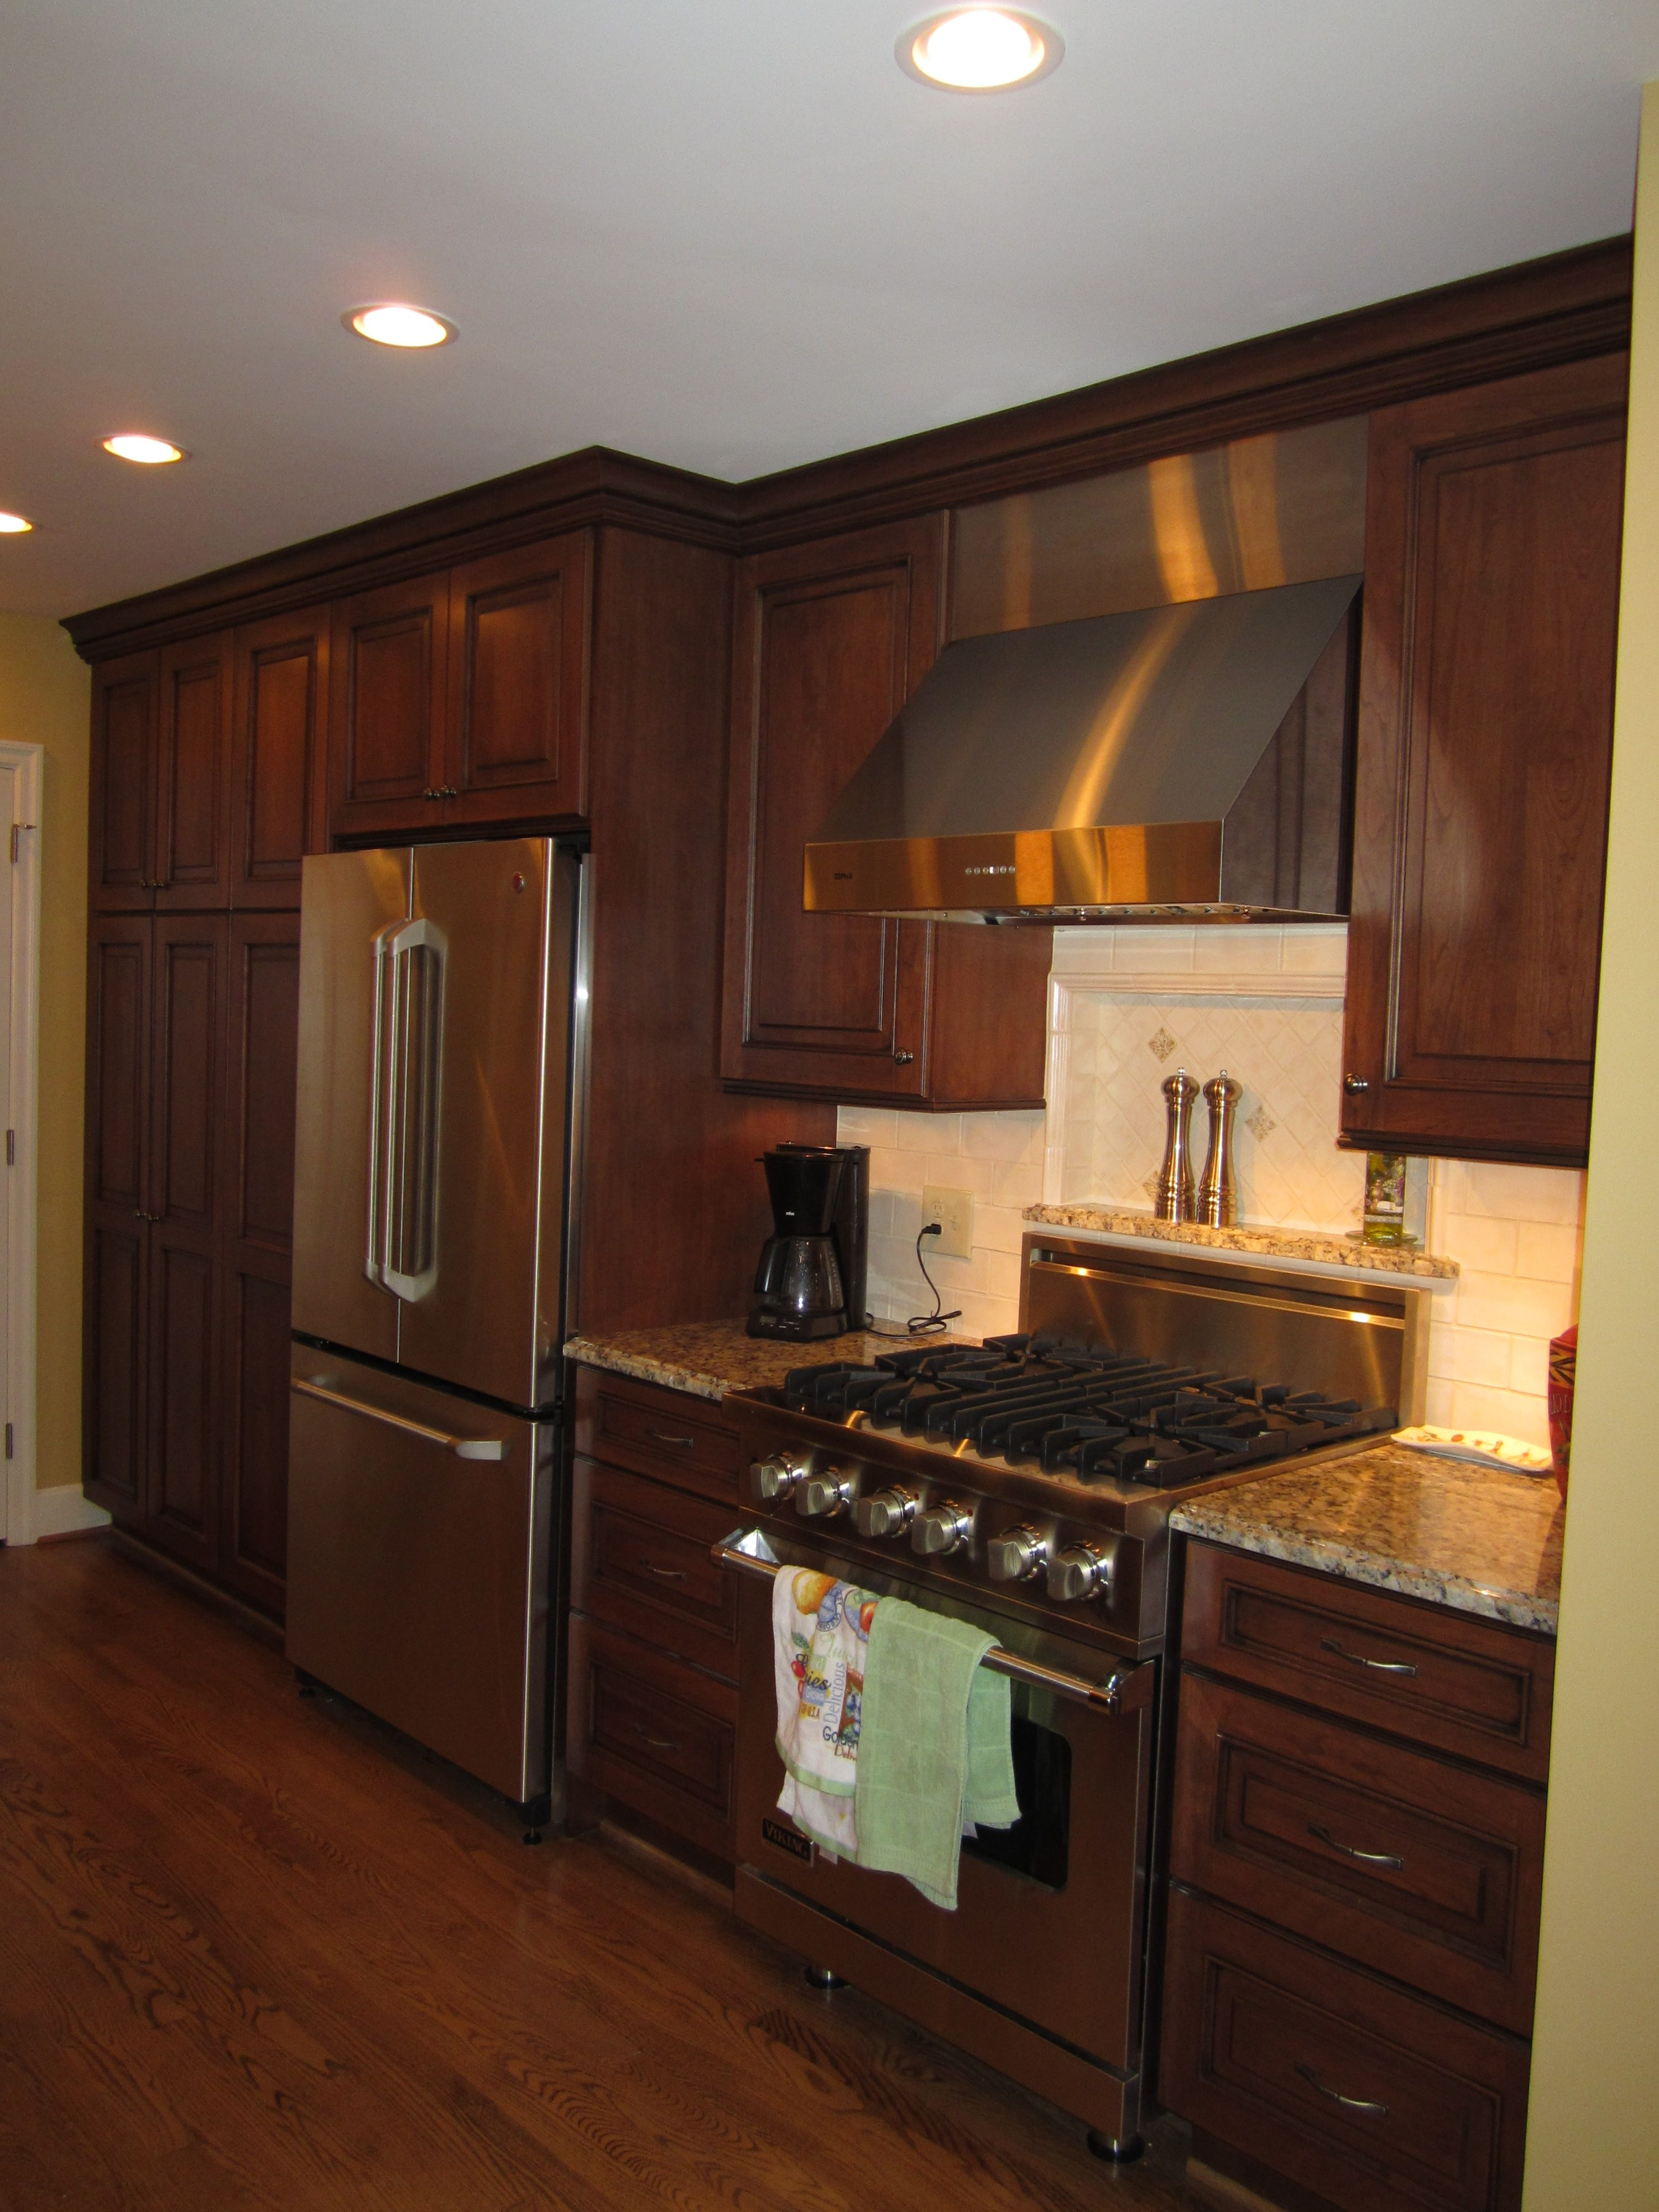 Pull Up A Seat How To Plan For Built In Seating In Your Home Kitchen Tiles Design Kitchen Cabinet Layout Kitchen Design